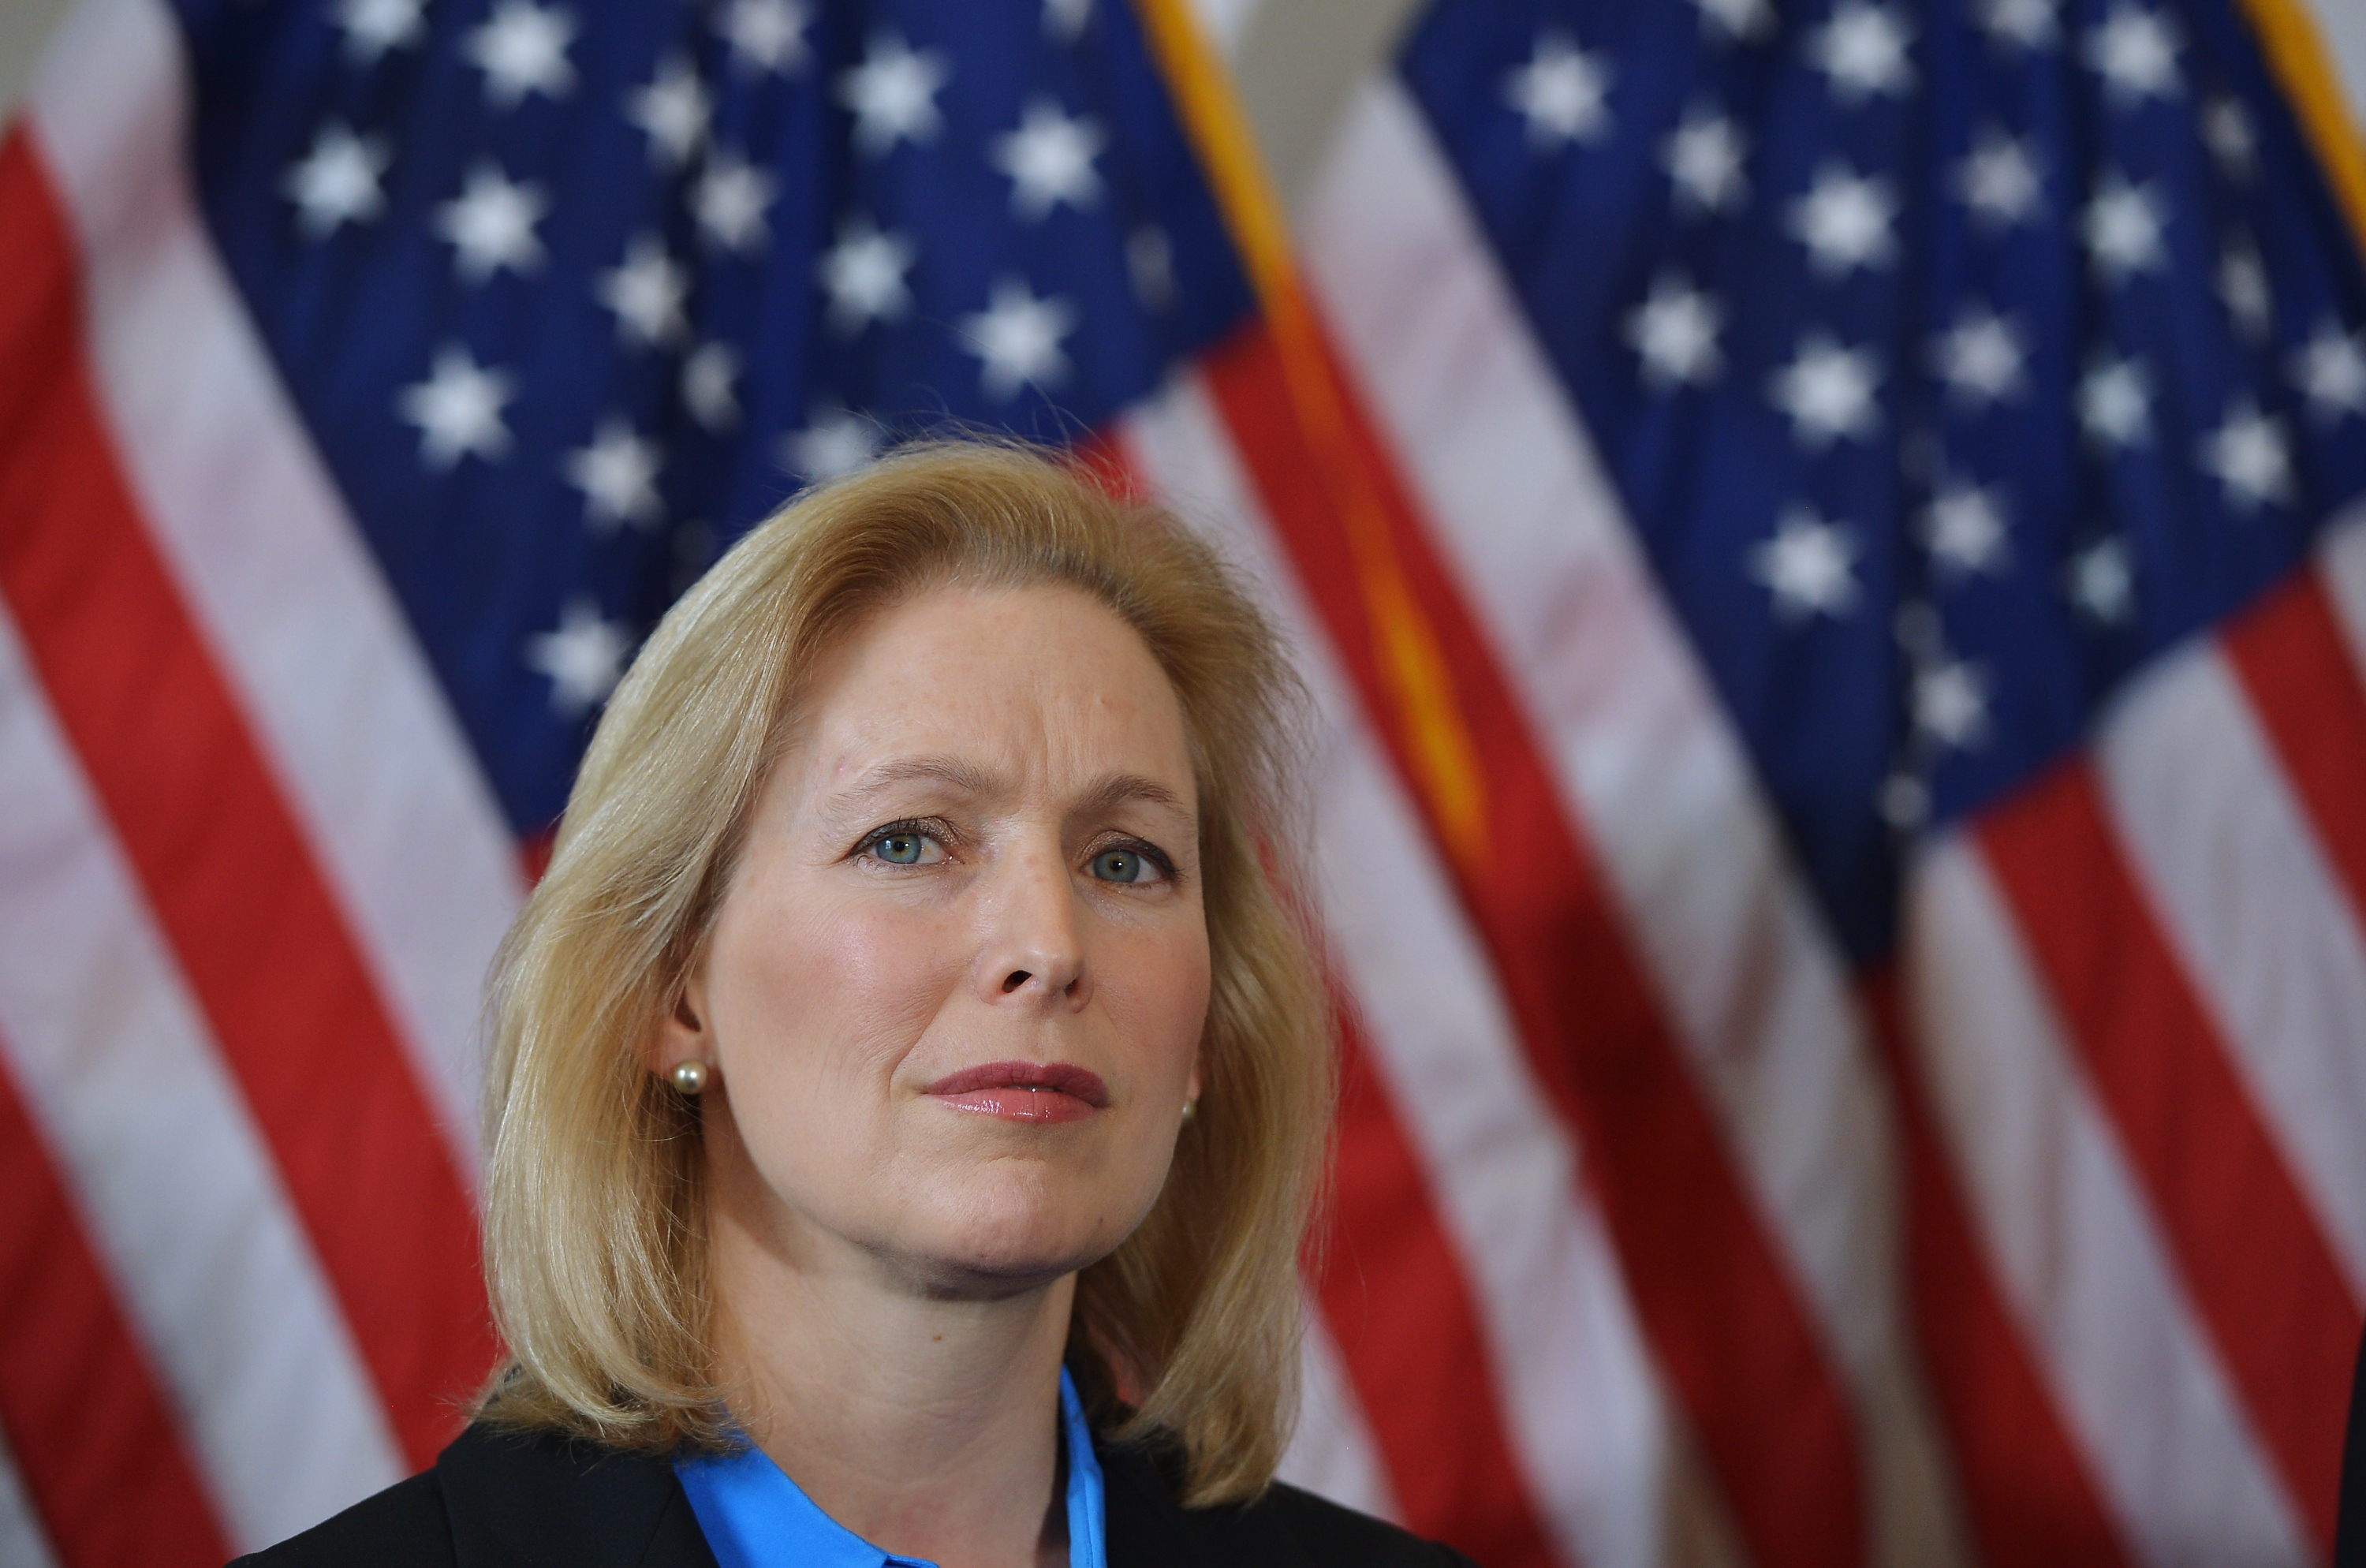 Senator Kirsten Gillibrand attends a press conference in the Russell Senate Office Building on Capitol Hill in Washington, Feb. 6, 2014.